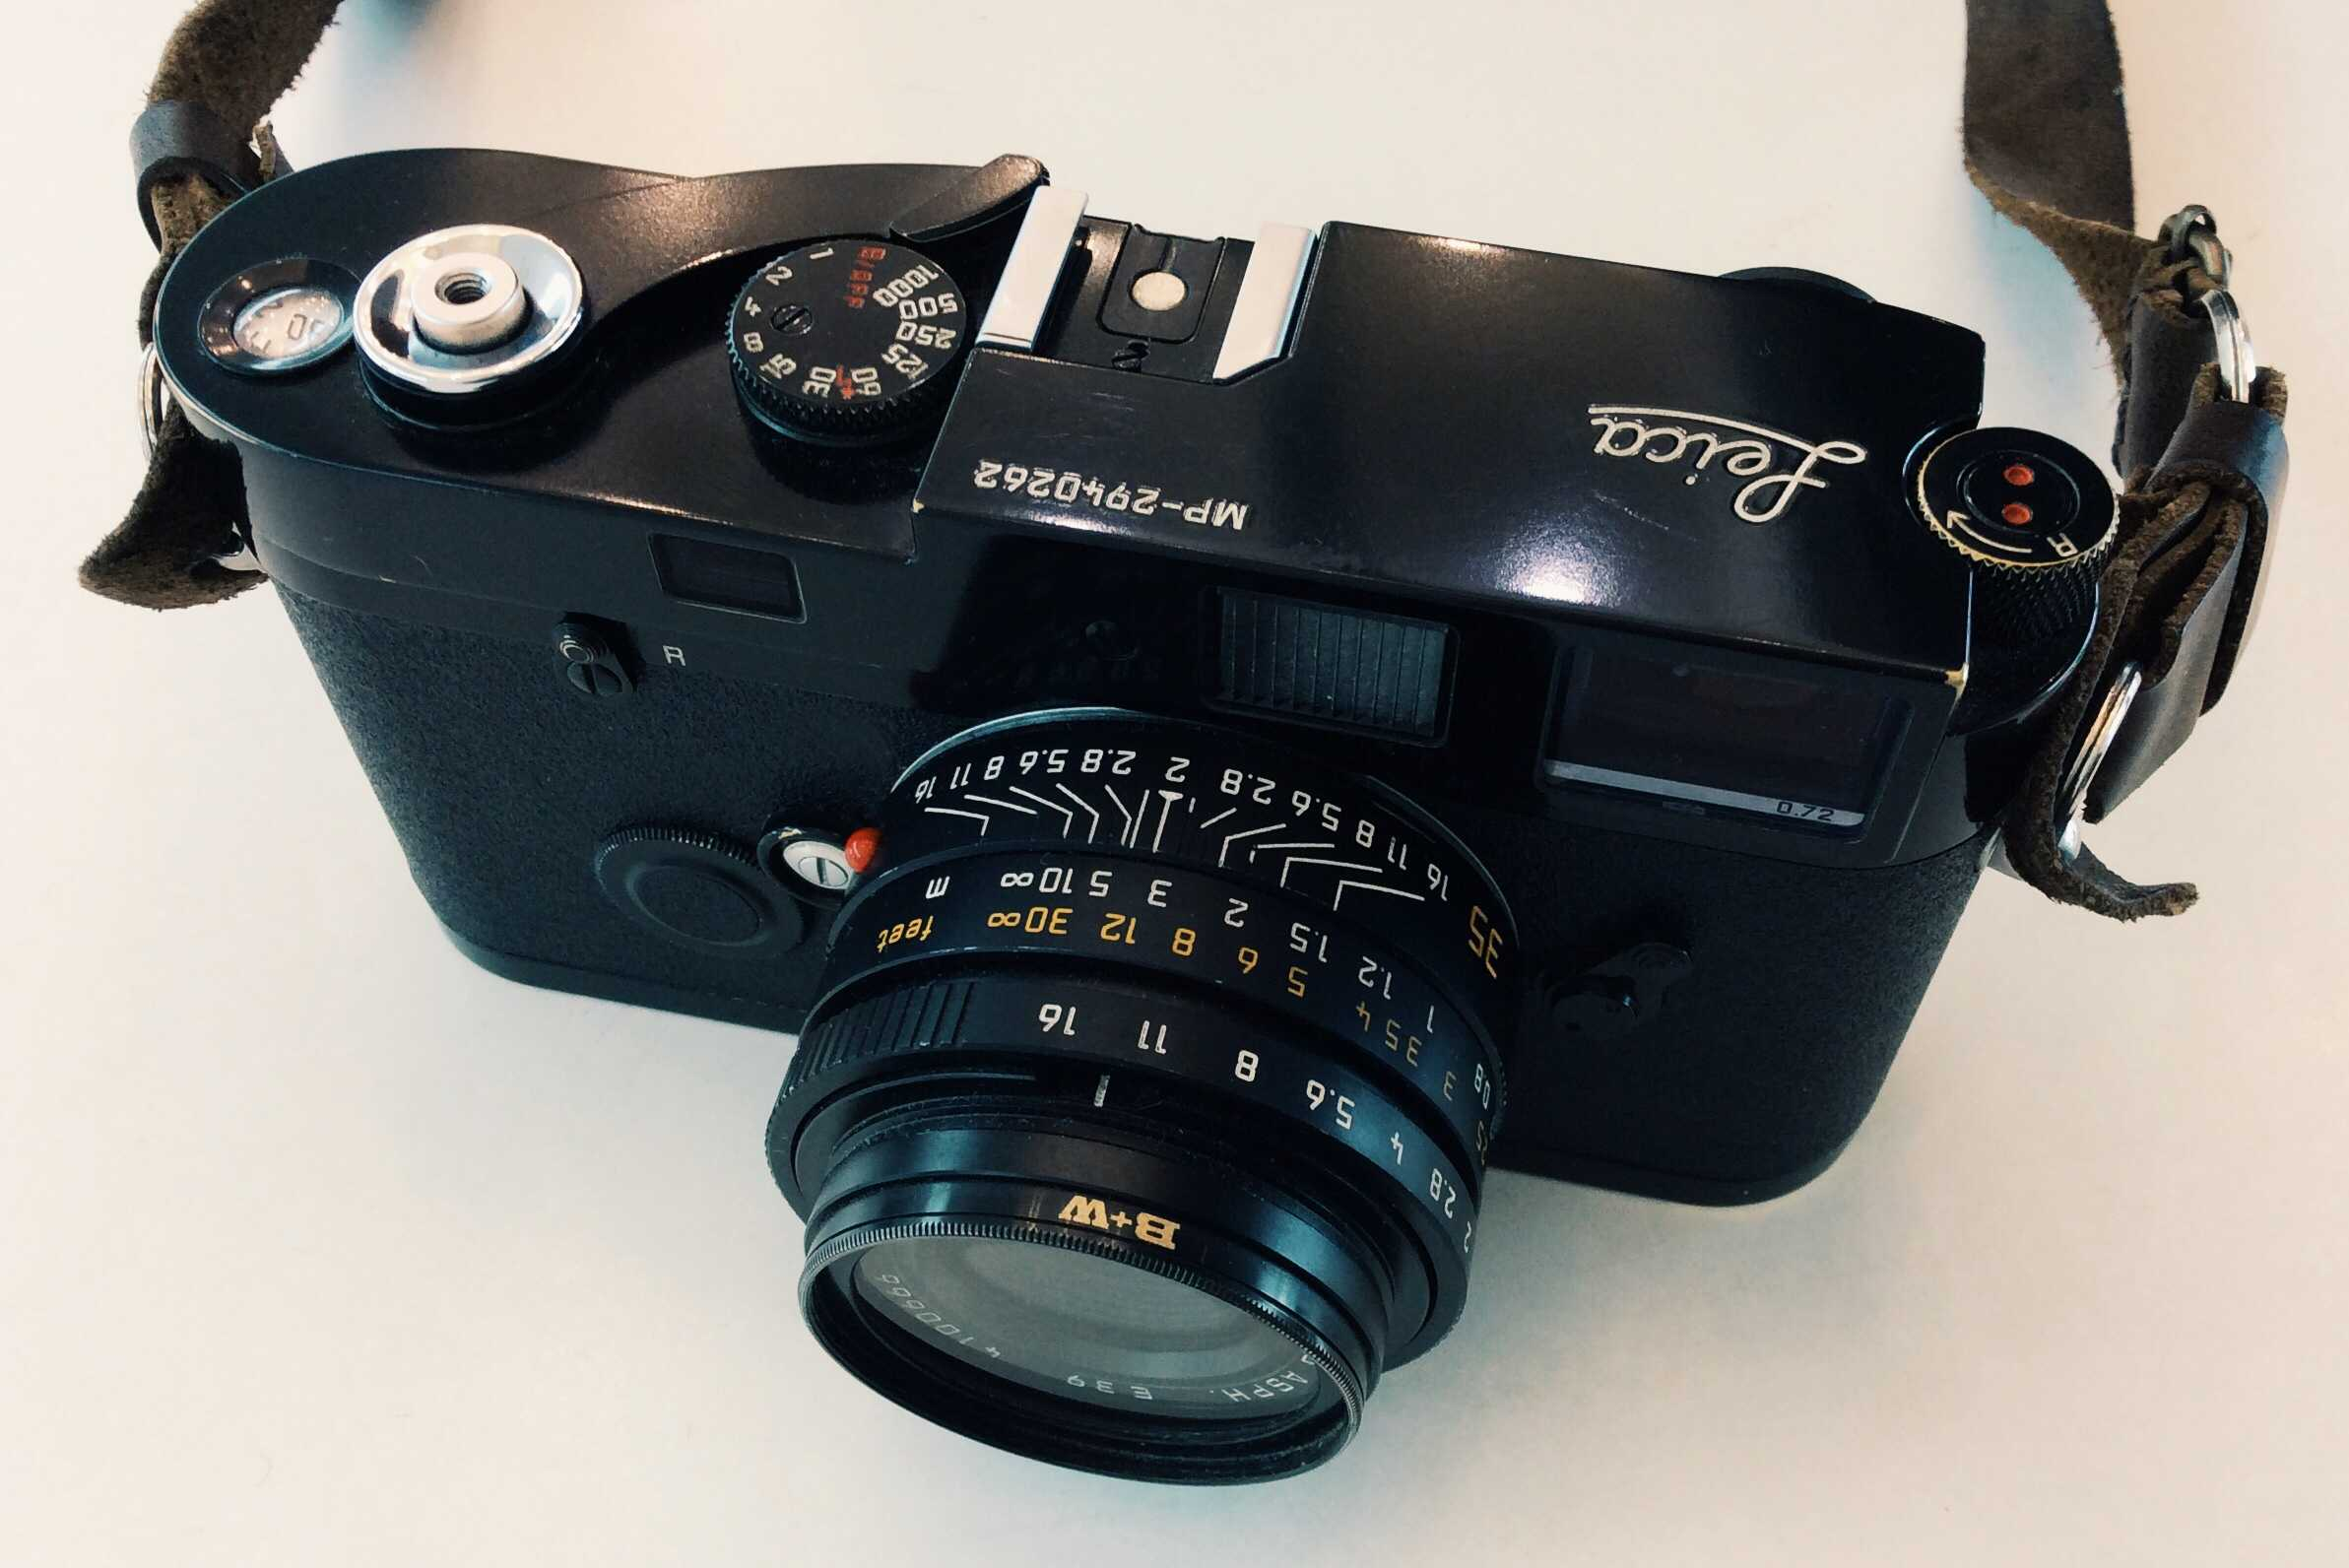 A Guide on How to Shoot Street Photography on a Film Leica (or Rangefinder)